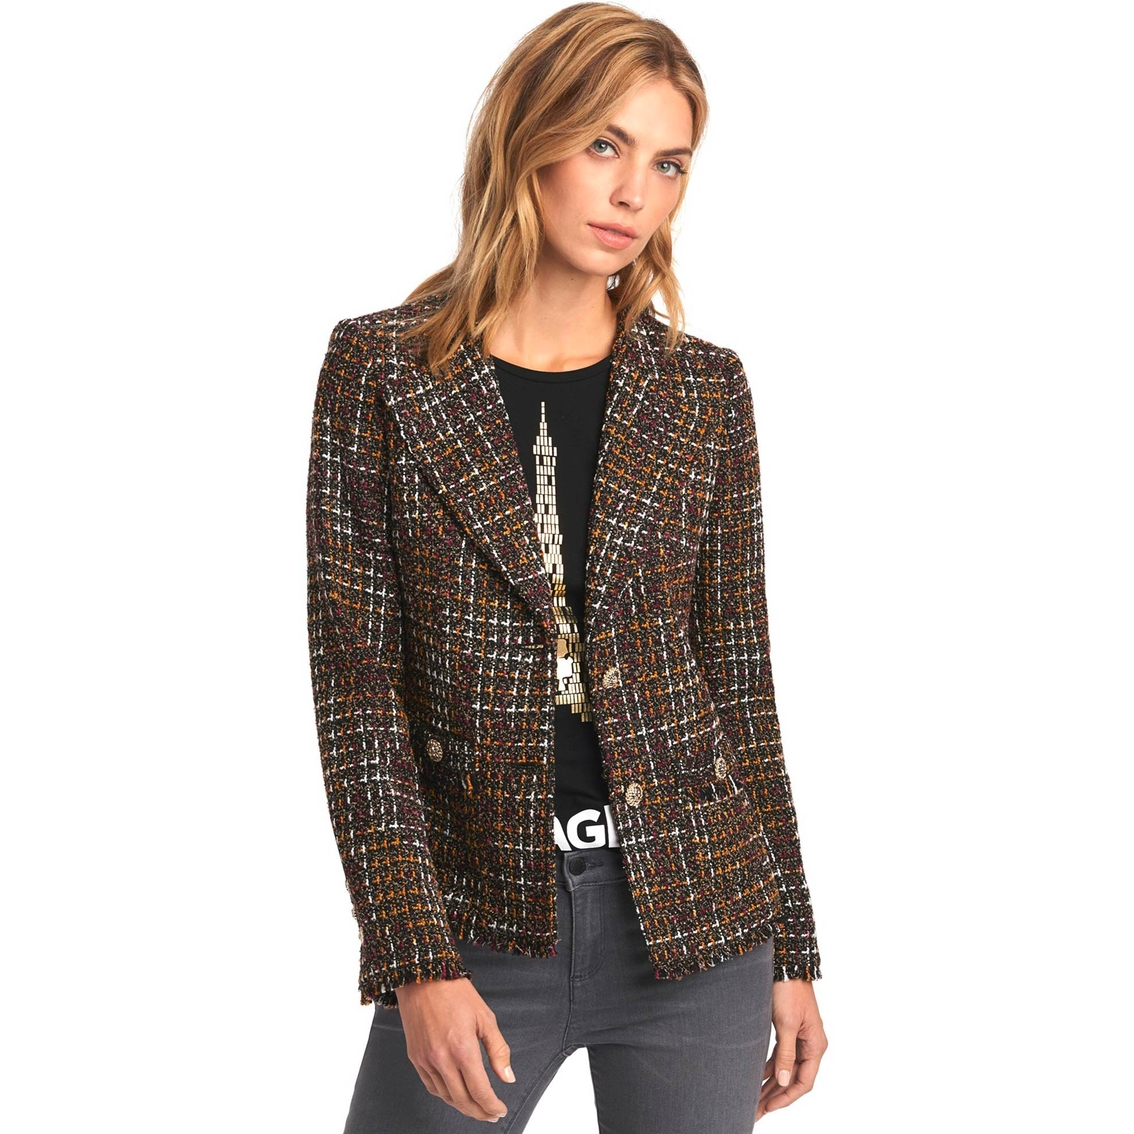 e25f2c3a56 Karl Lagerfeld Paris Blazer Tweed Jacket